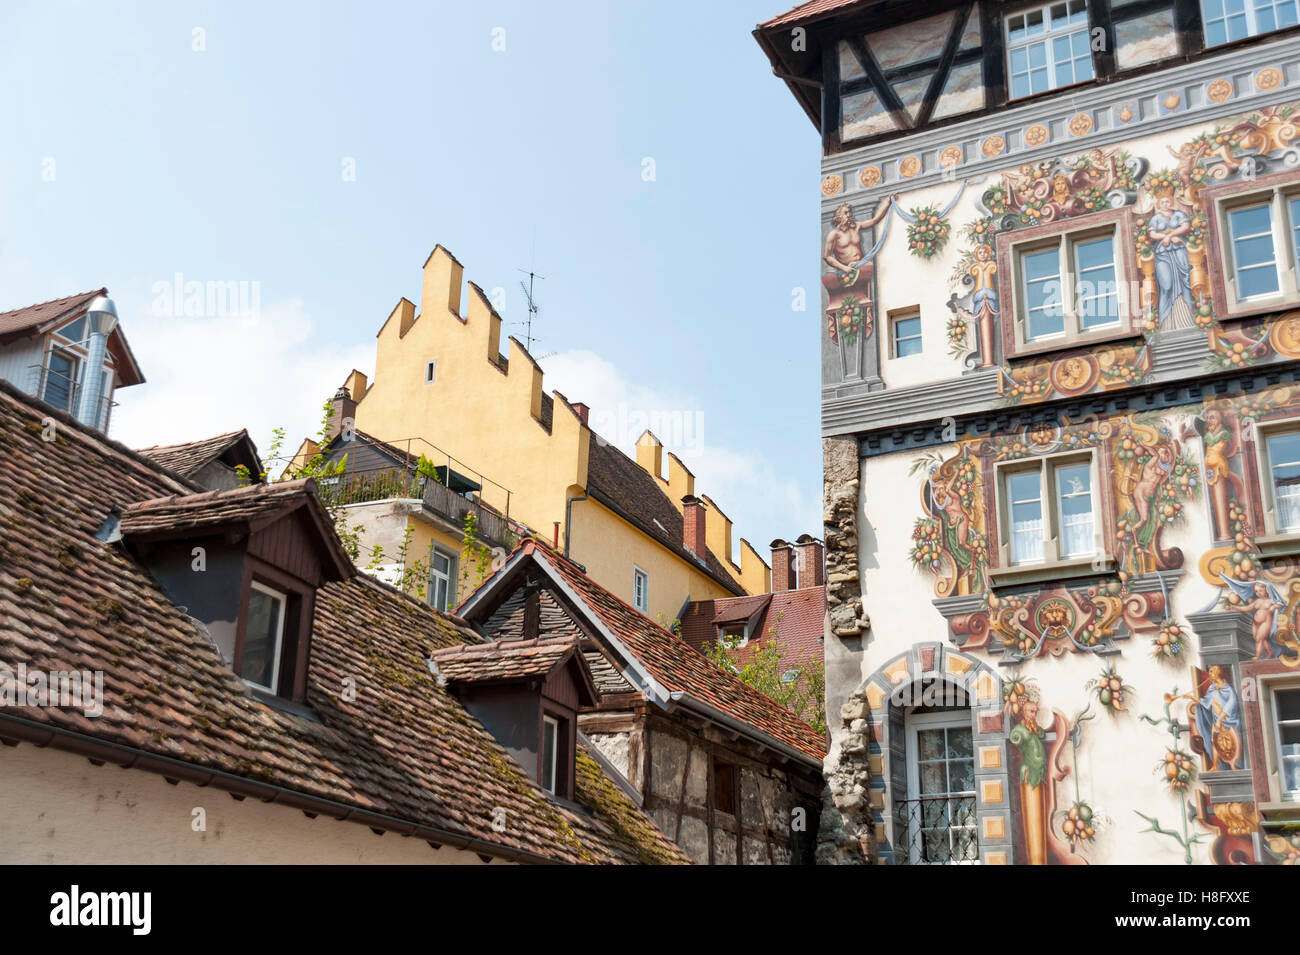 konstanz turm haus zum goldenen l wen in der hohenhausgasse mit architektur gem lde aus der. Black Bedroom Furniture Sets. Home Design Ideas